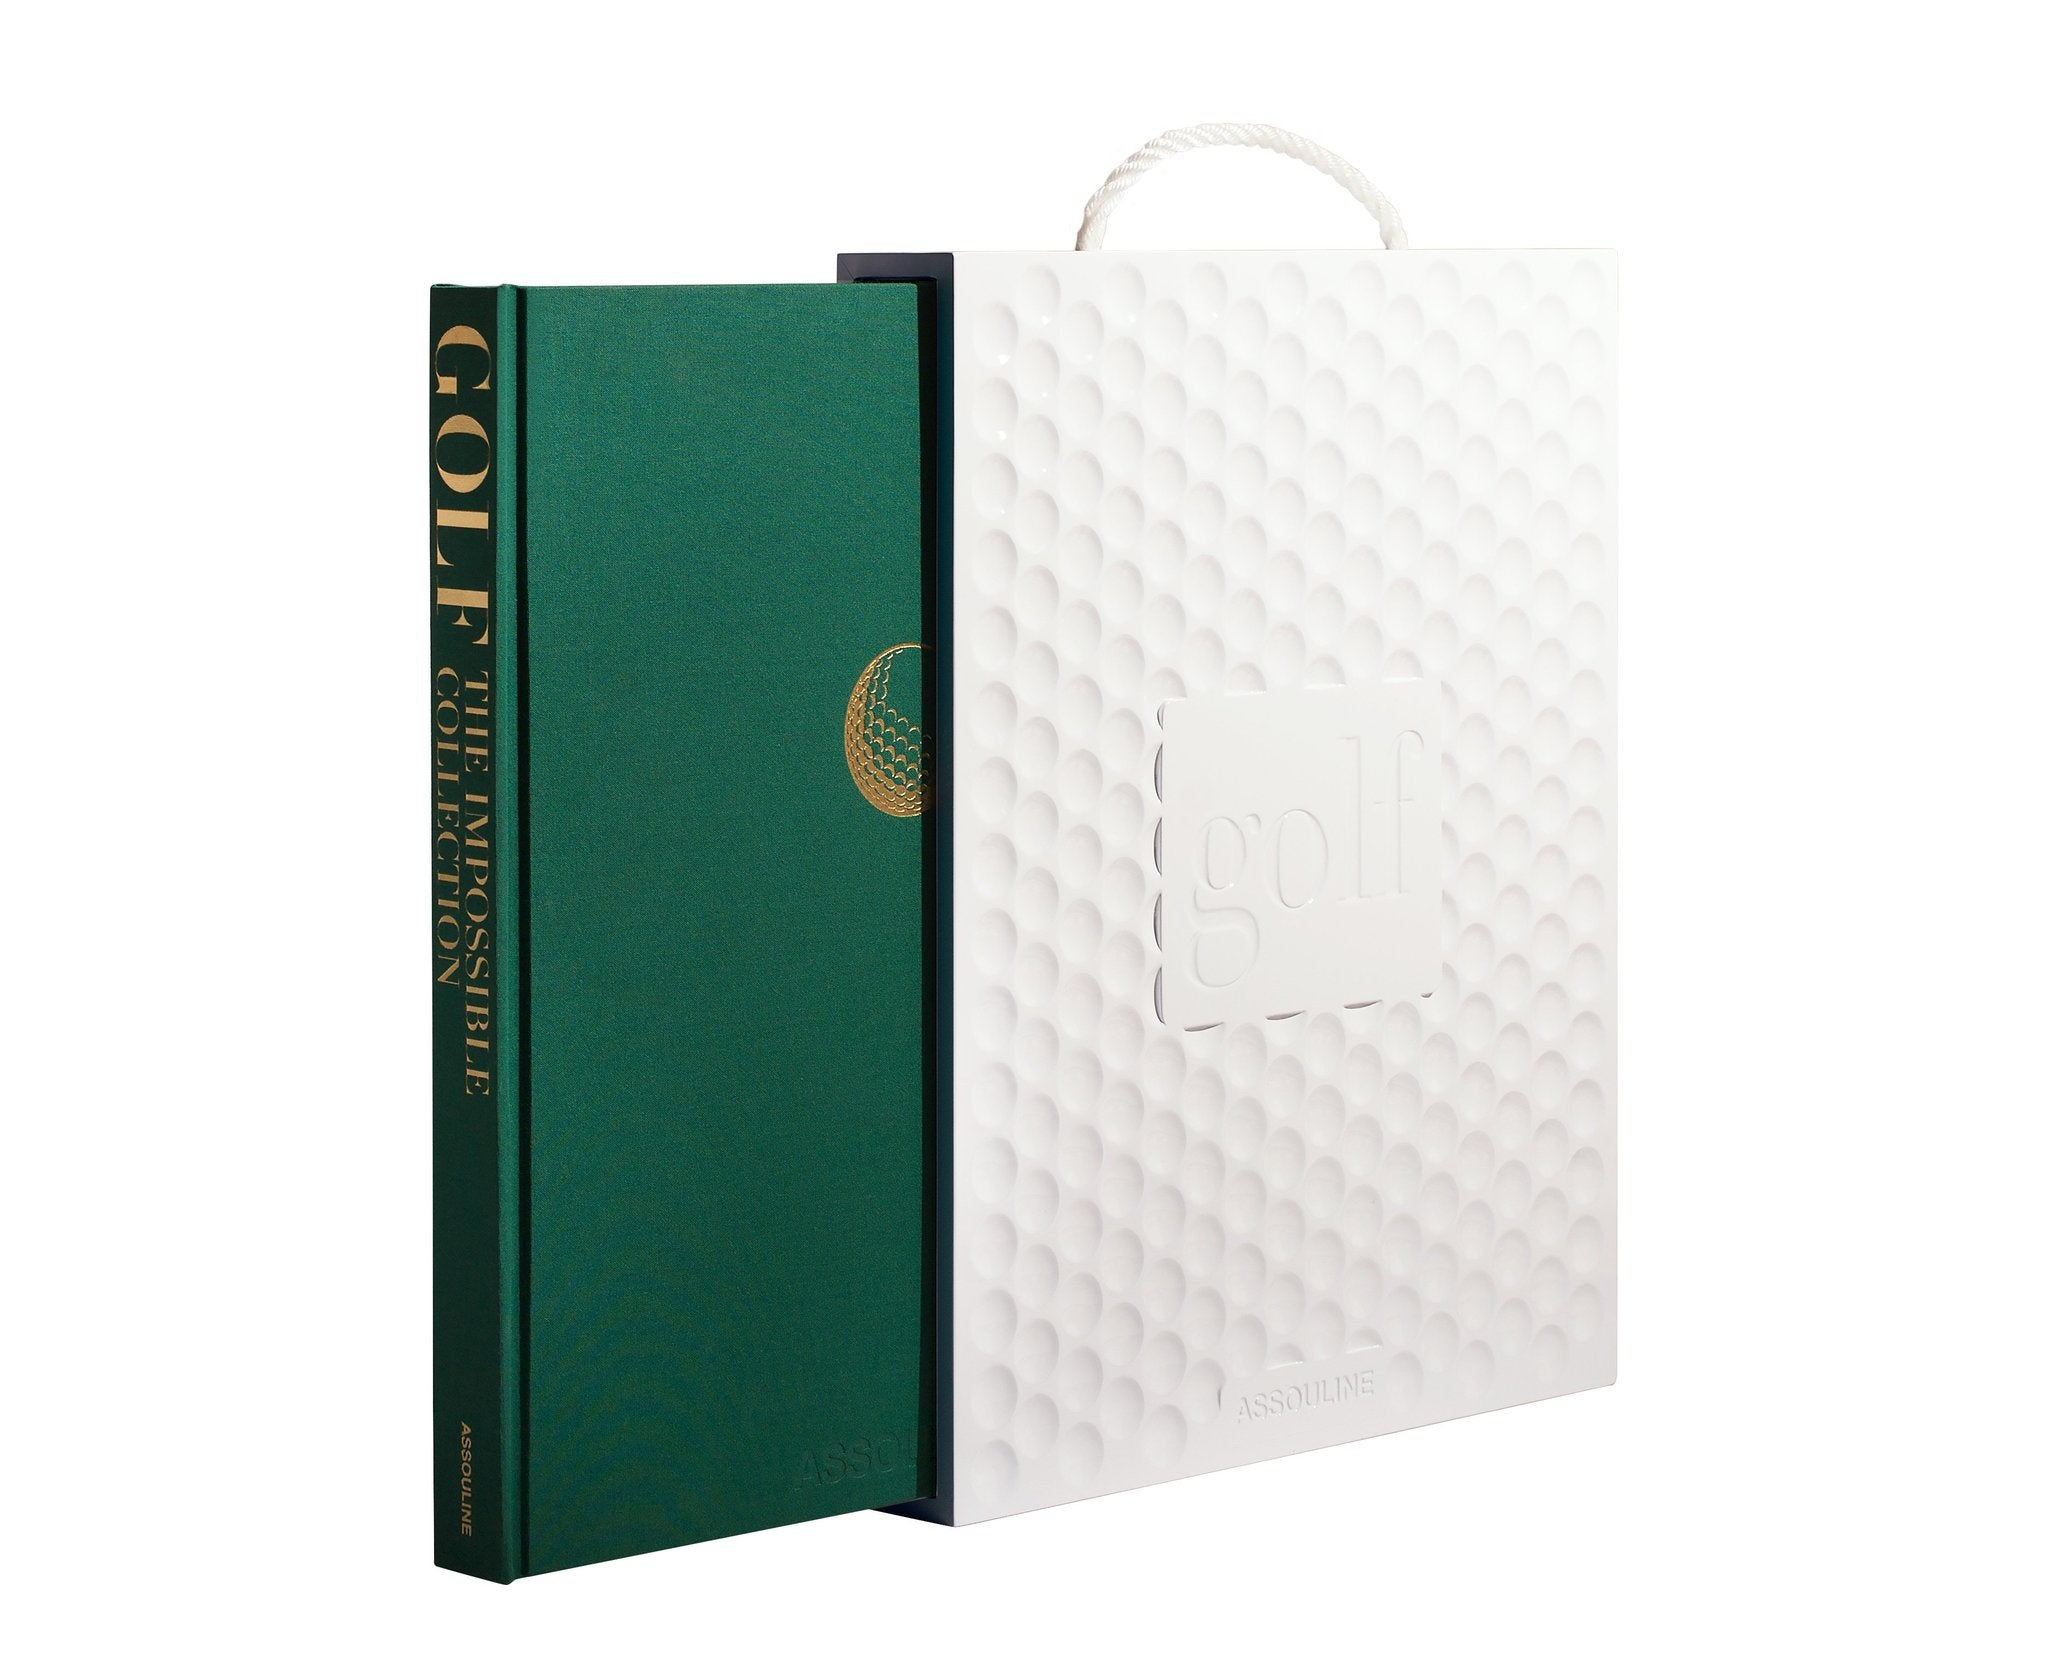 The Impossible Collection of Golf fra Assouline